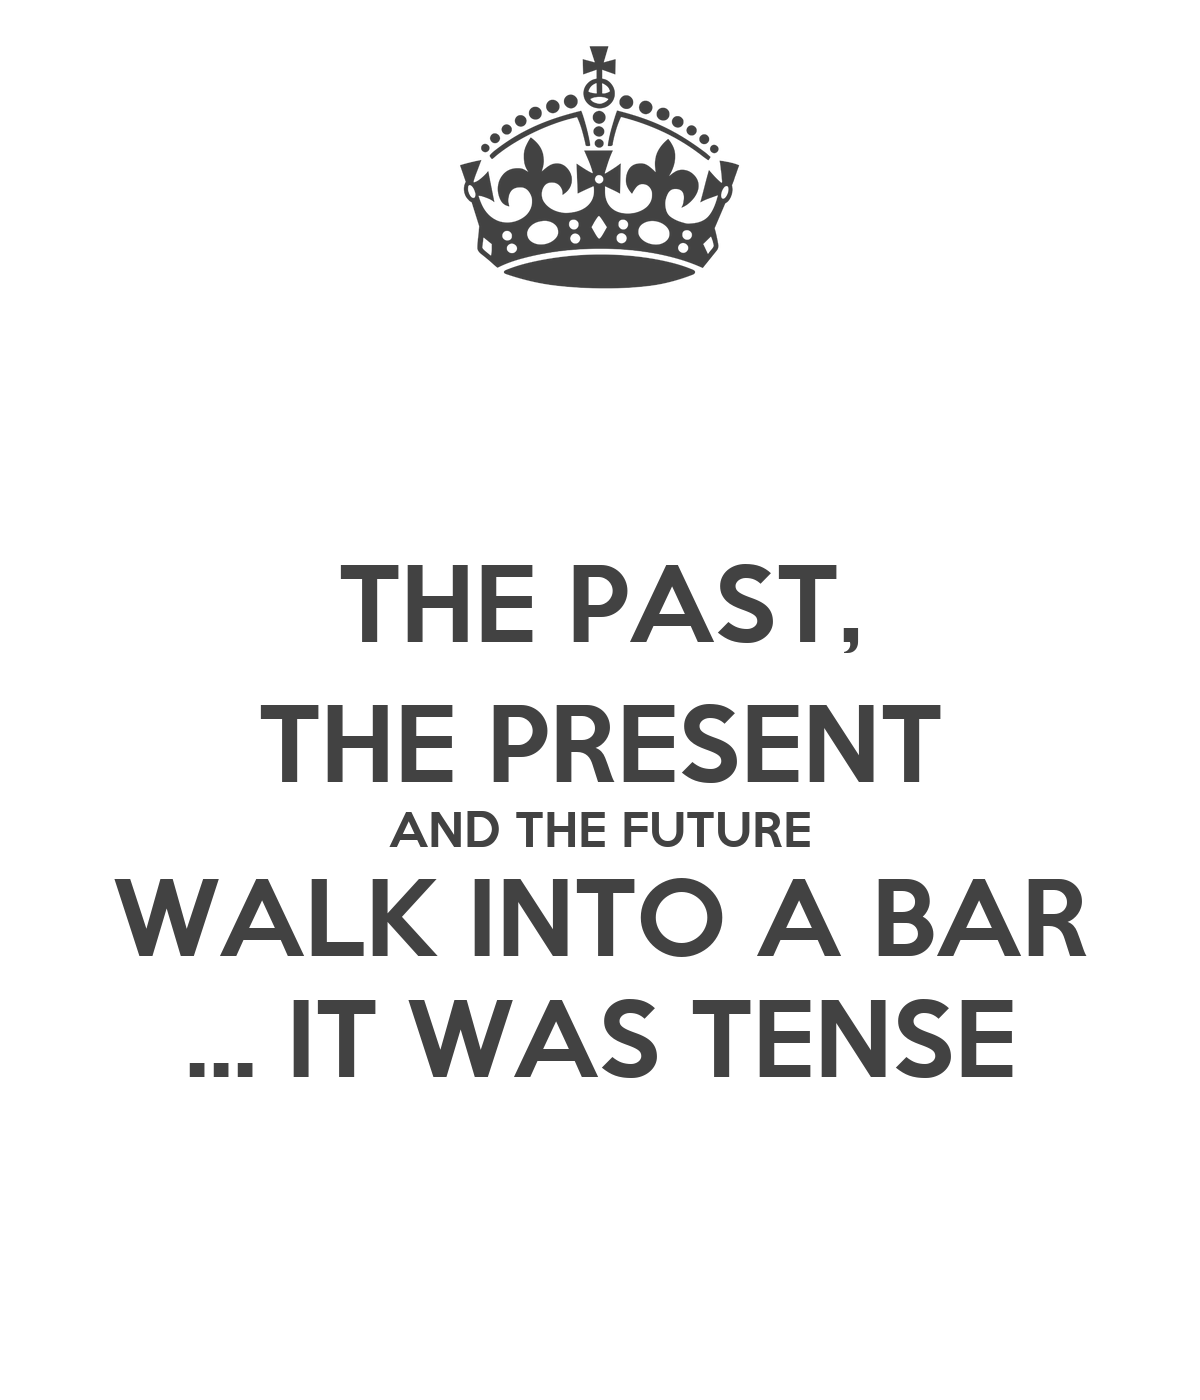 THE PAST, THE PRESENT AND THE FUTURE WALK INTO A BAR